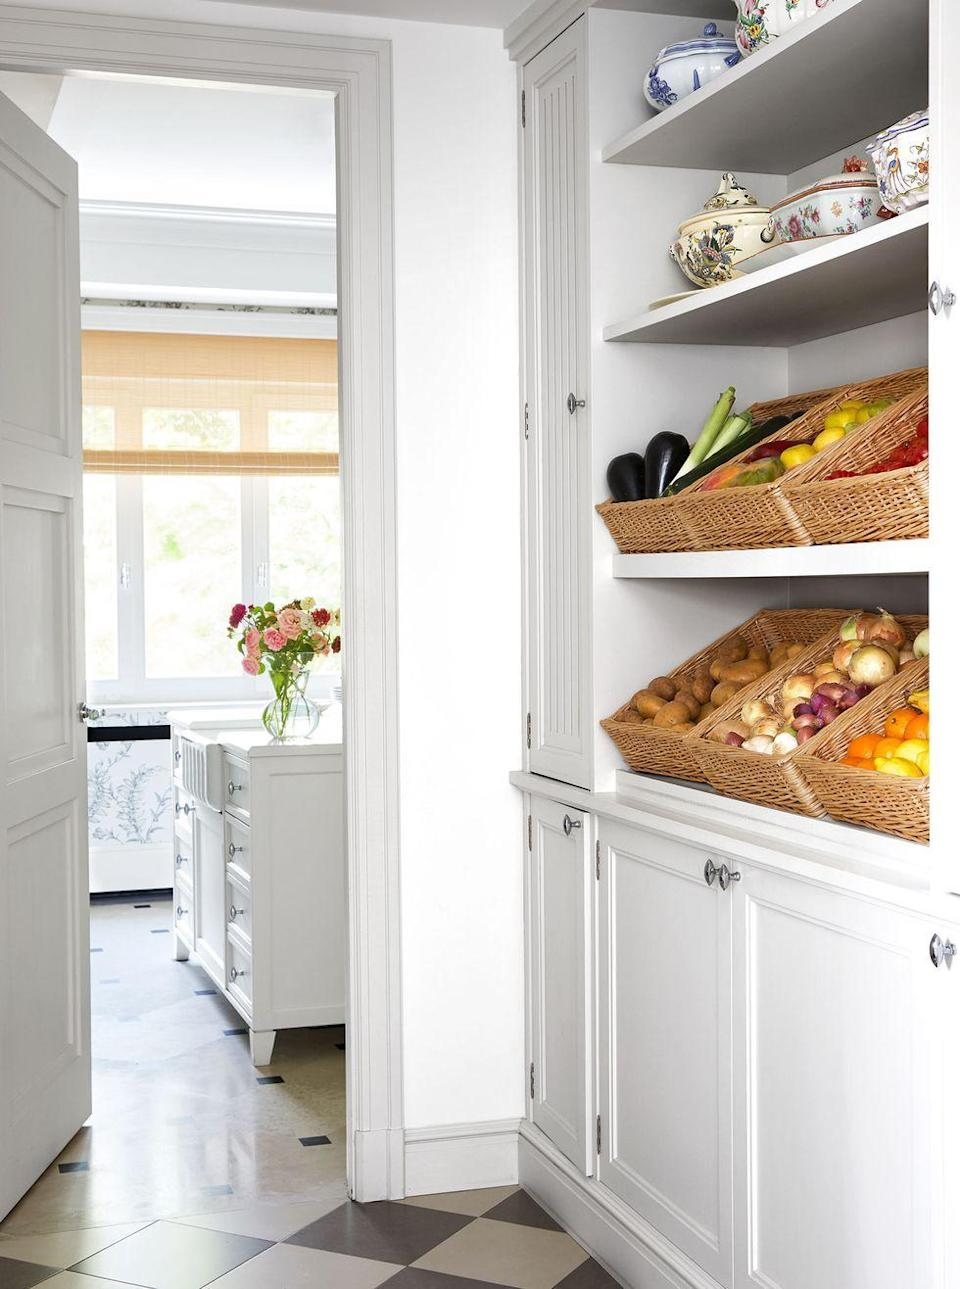 """<p>Whether you've gotten really into <a href=""""https://www.elledecor.com/life-culture/food-drink/g32080904/bake-bread-at-home/"""" rel=""""nofollow noopener"""" target=""""_blank"""" data-ylk=""""slk:baking"""" class=""""link rapid-noclick-resp"""">baking</a> this year or simply have more mouths to feed at home, increased kitchen storage is an absolute necessity and will continue to be in 2021. So get out your baskets and take a cue from the pantry of this chic <a href=""""https://www.elledecor.com/design-decorate/house-interiors/a34238830/isabel-lopez-quesada-madrid-apartment/"""" rel=""""nofollow noopener"""" target=""""_blank"""" data-ylk=""""slk:Madrid apartment"""" class=""""link rapid-noclick-resp"""">Madrid apartment</a> (which just happens to be the onetime home of screen legend Ava Gardner).</p>"""